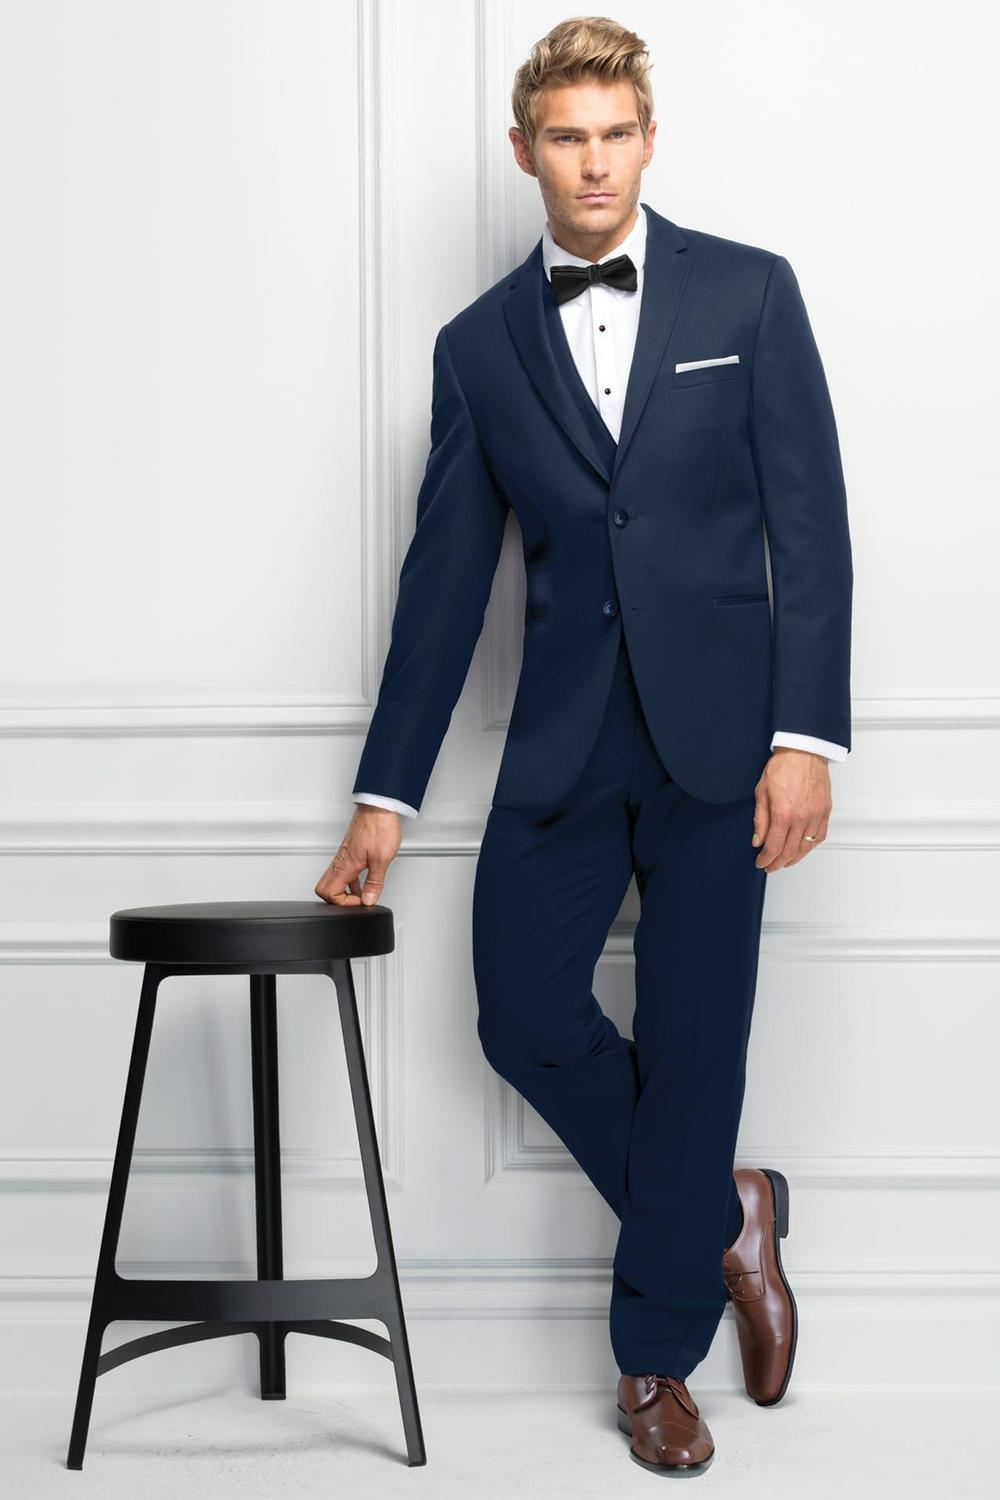 wedding-suit-navy-michael-kors-sterling-372-1.jpg